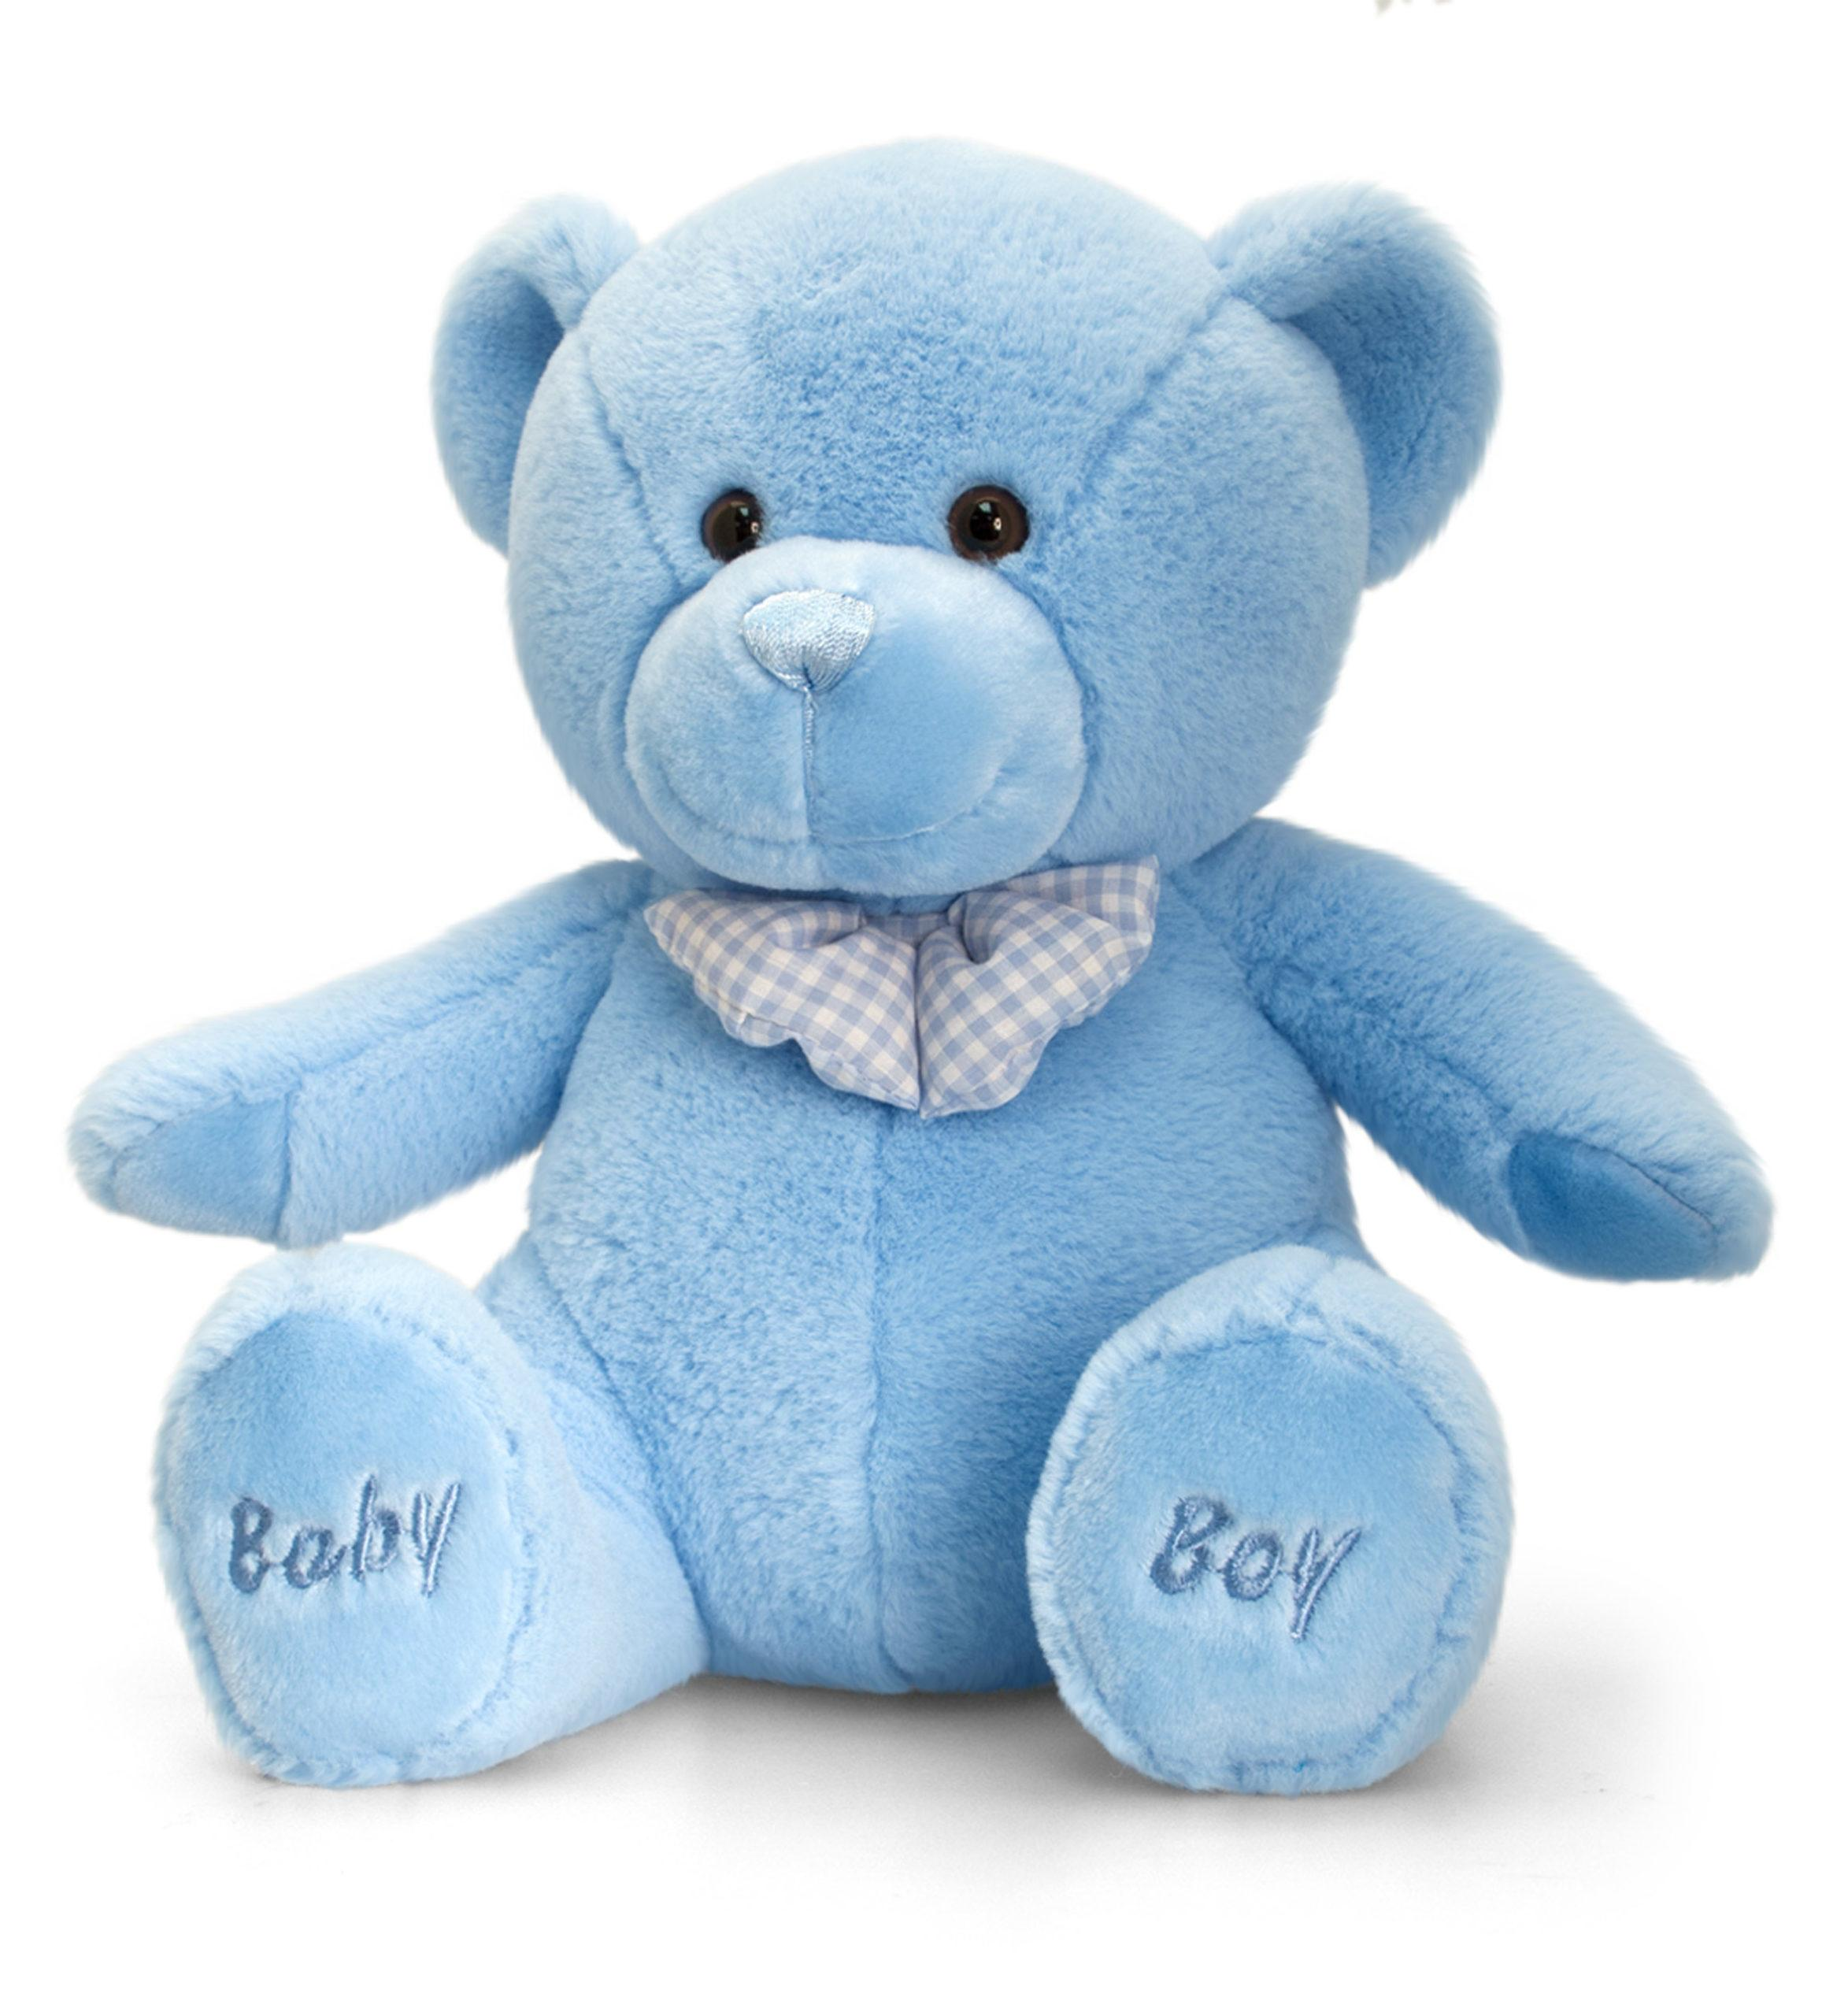 Soft Blue Teddy Bear - Baby Boy